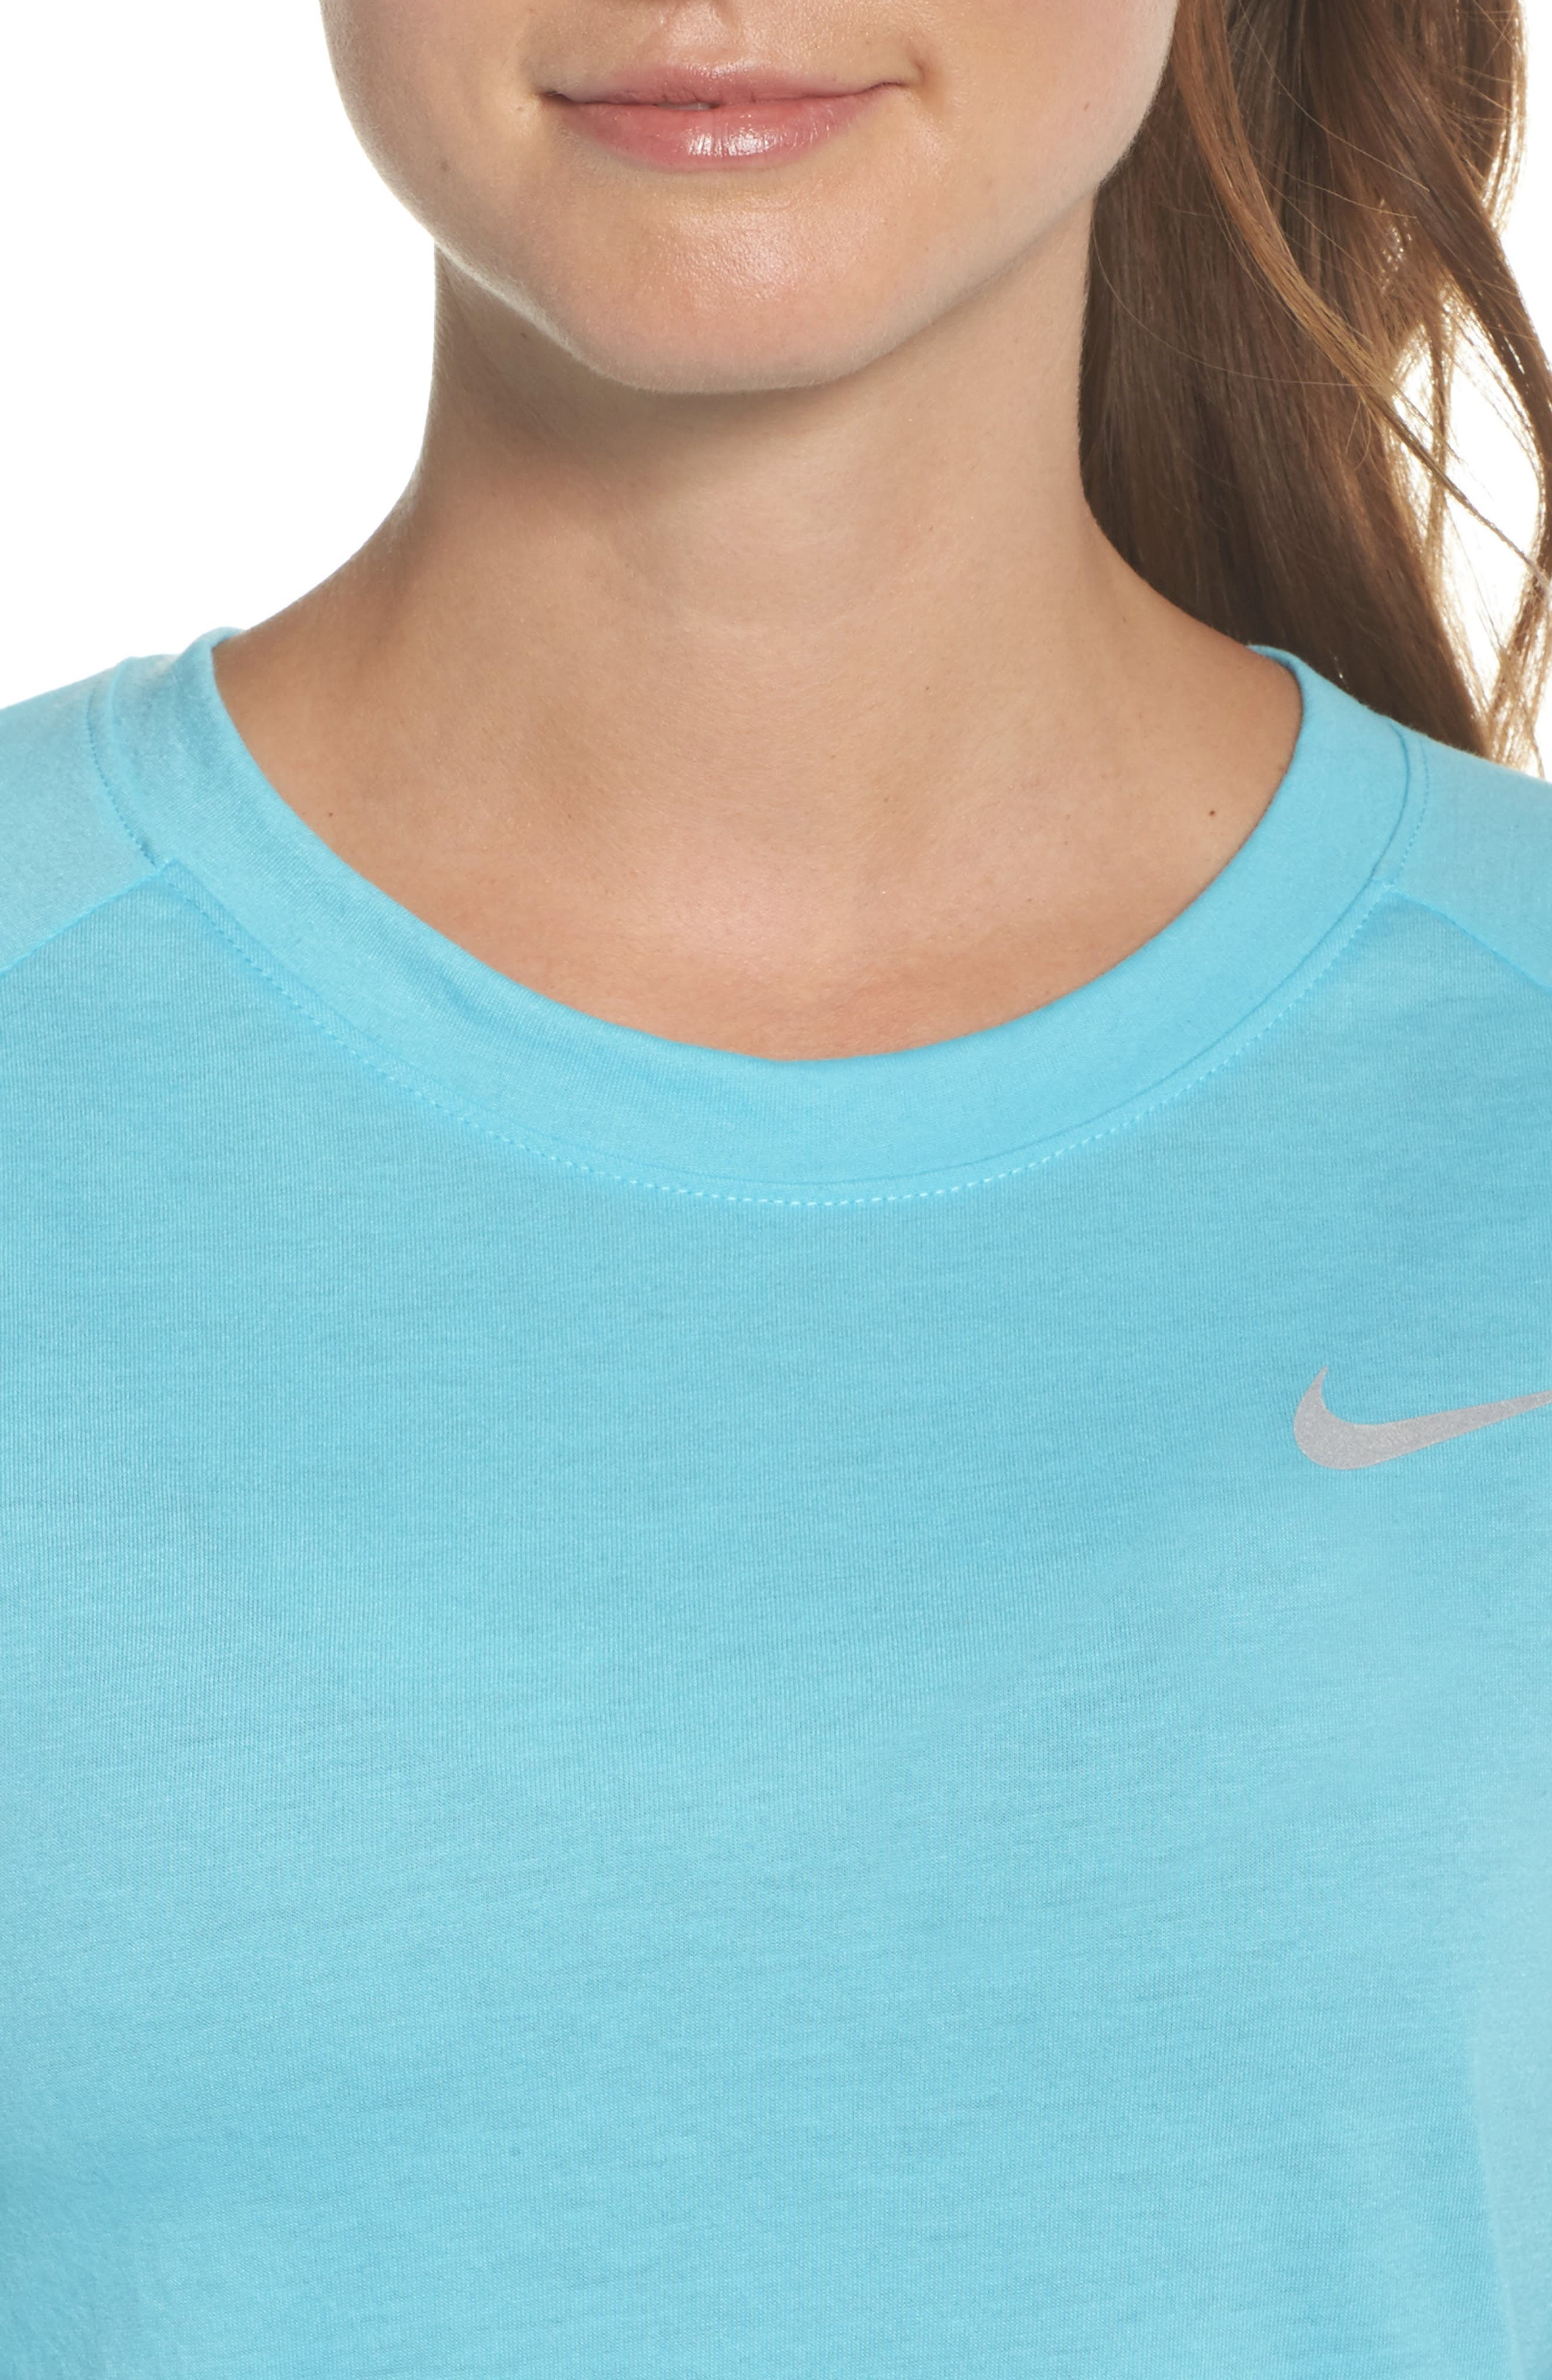 Breathe Tailwind Running Top,                             Alternate thumbnail 9, color,